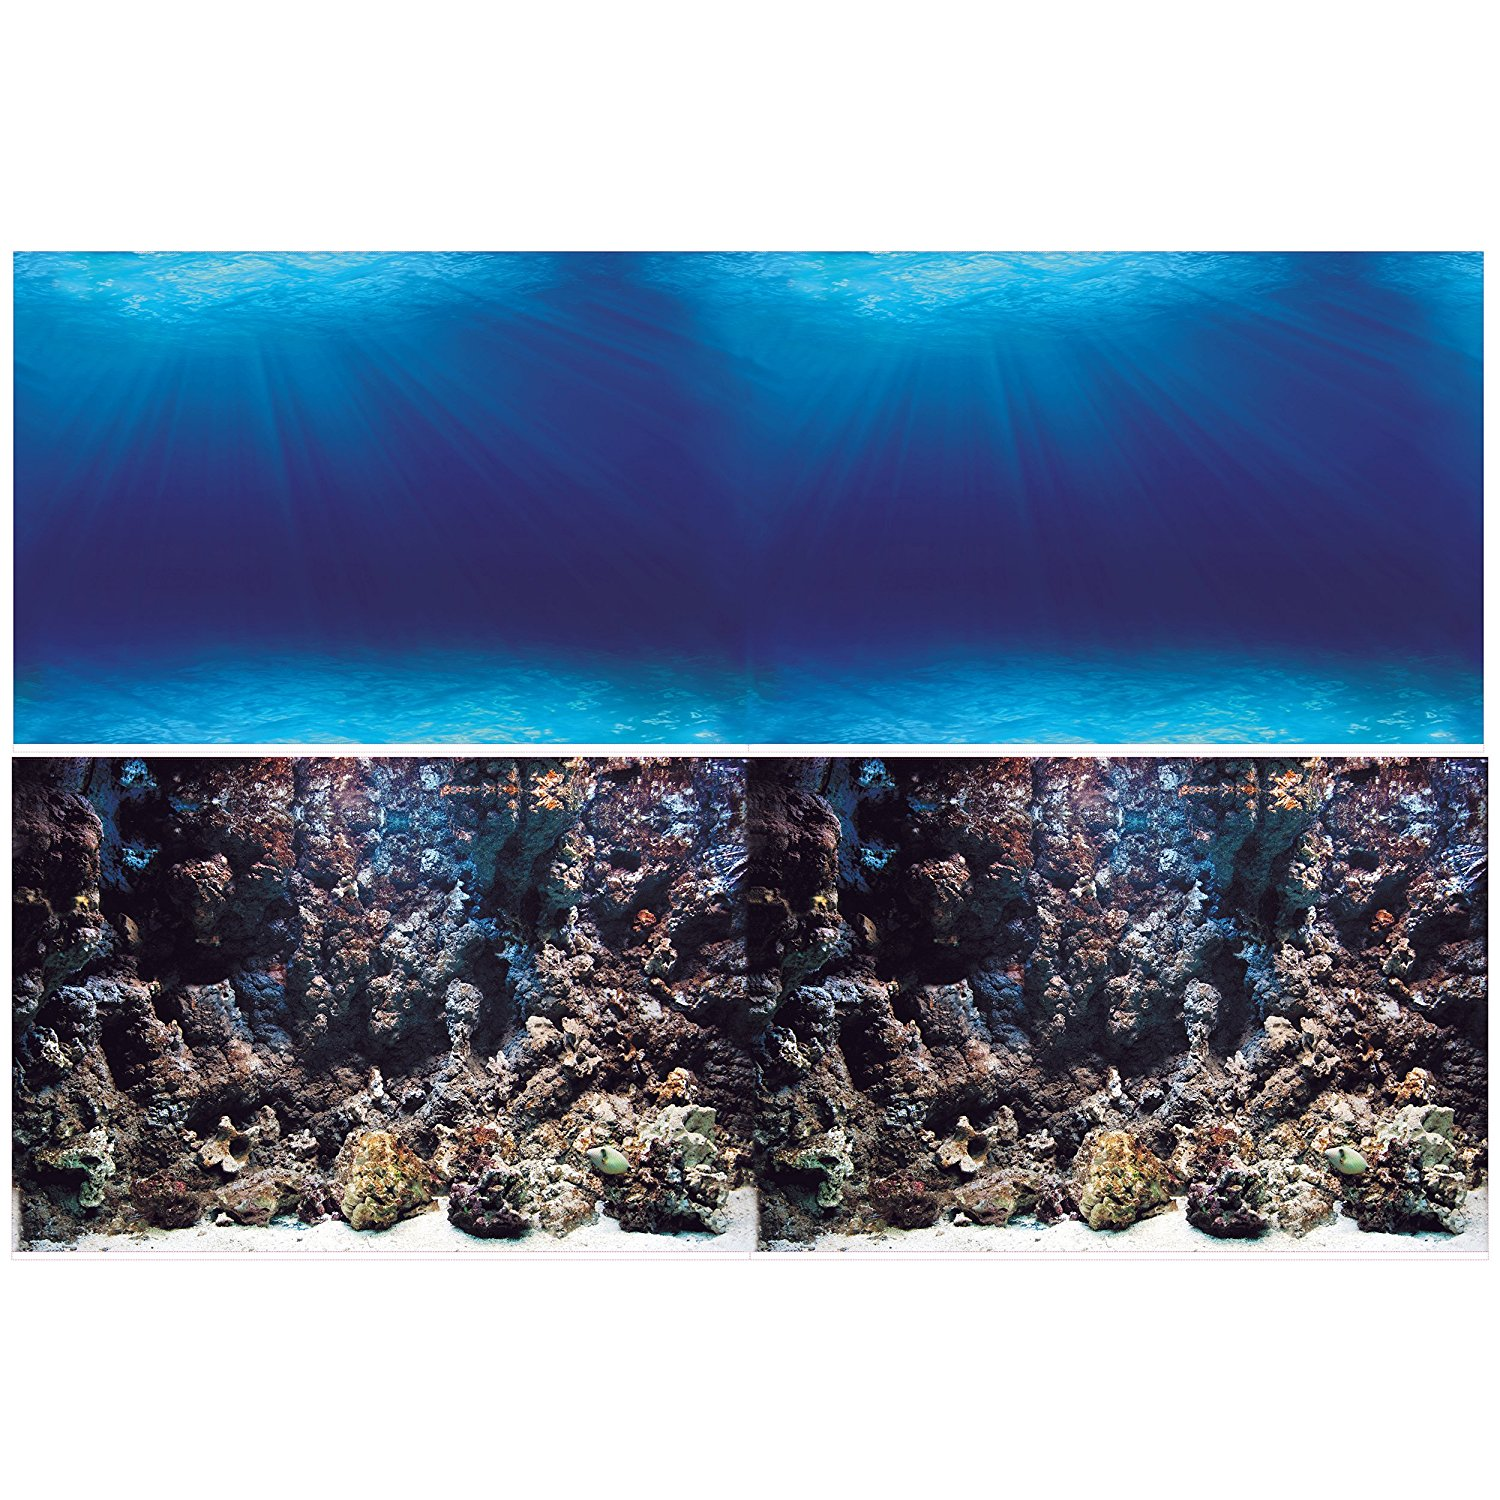 Aquarium Background Double sides (Deep Seabed Coral Rock) (Deep Seabed Coral Rock, 84WX24H), Double sided- One... by